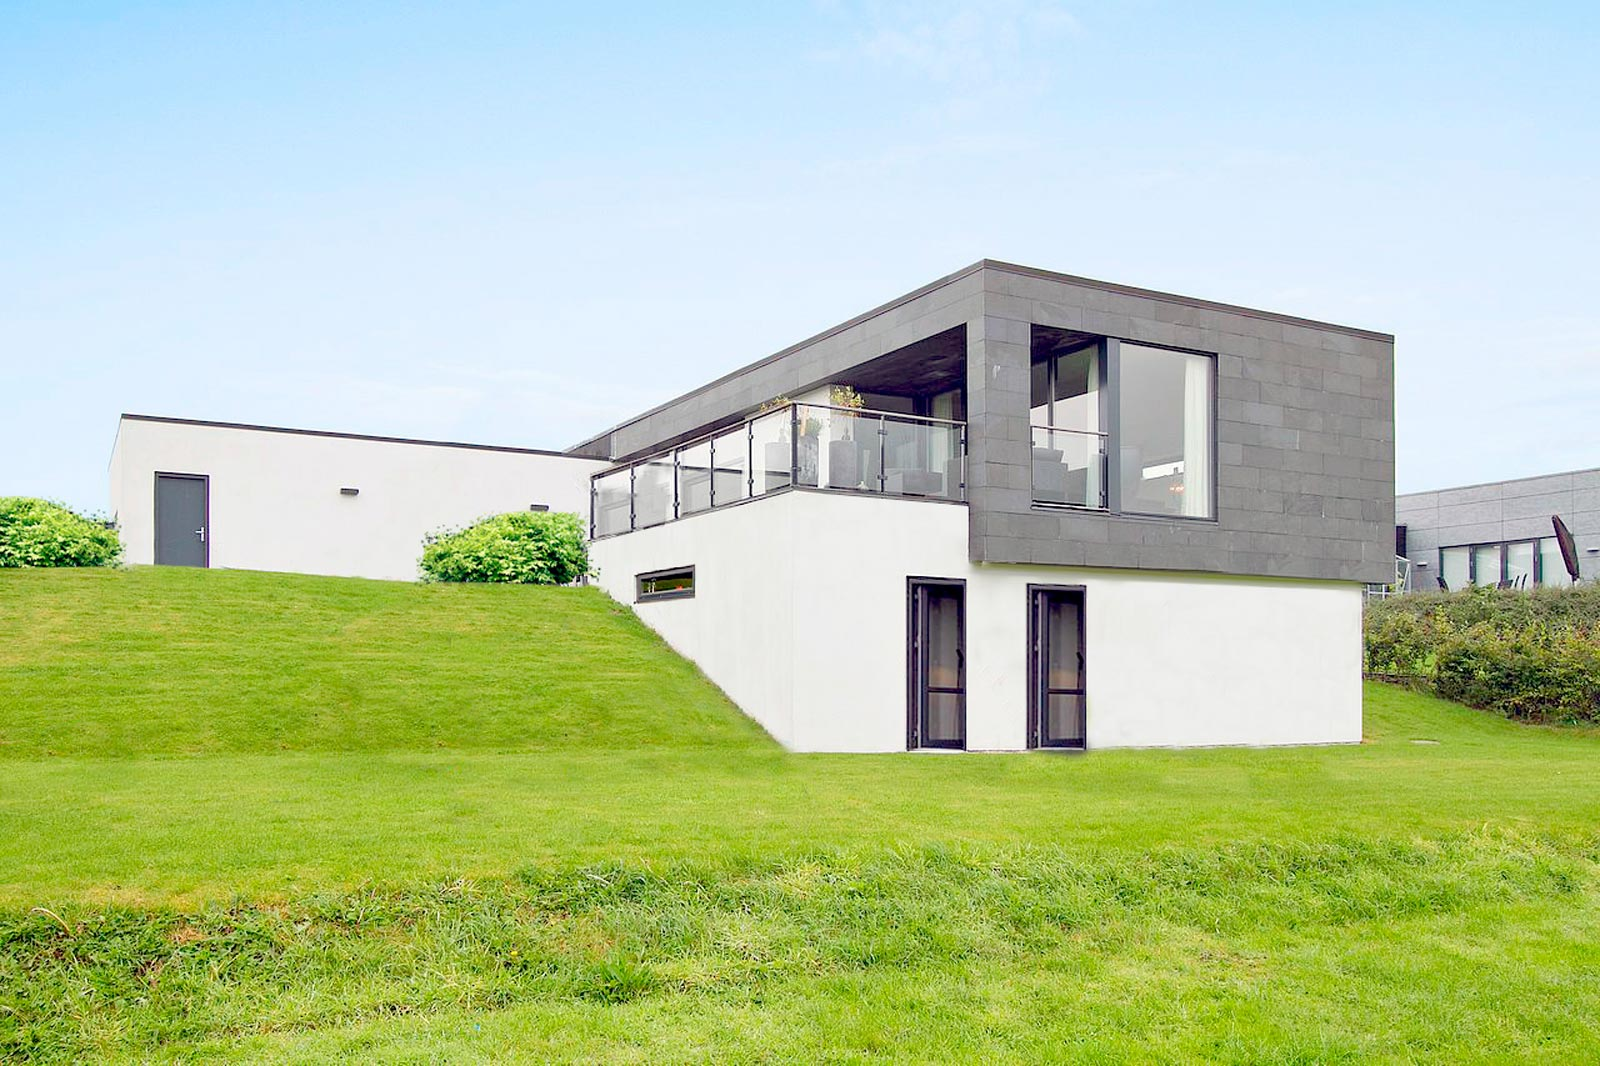 Eventyrbakken, Nibe - Private villa overlooking fields and green pastures